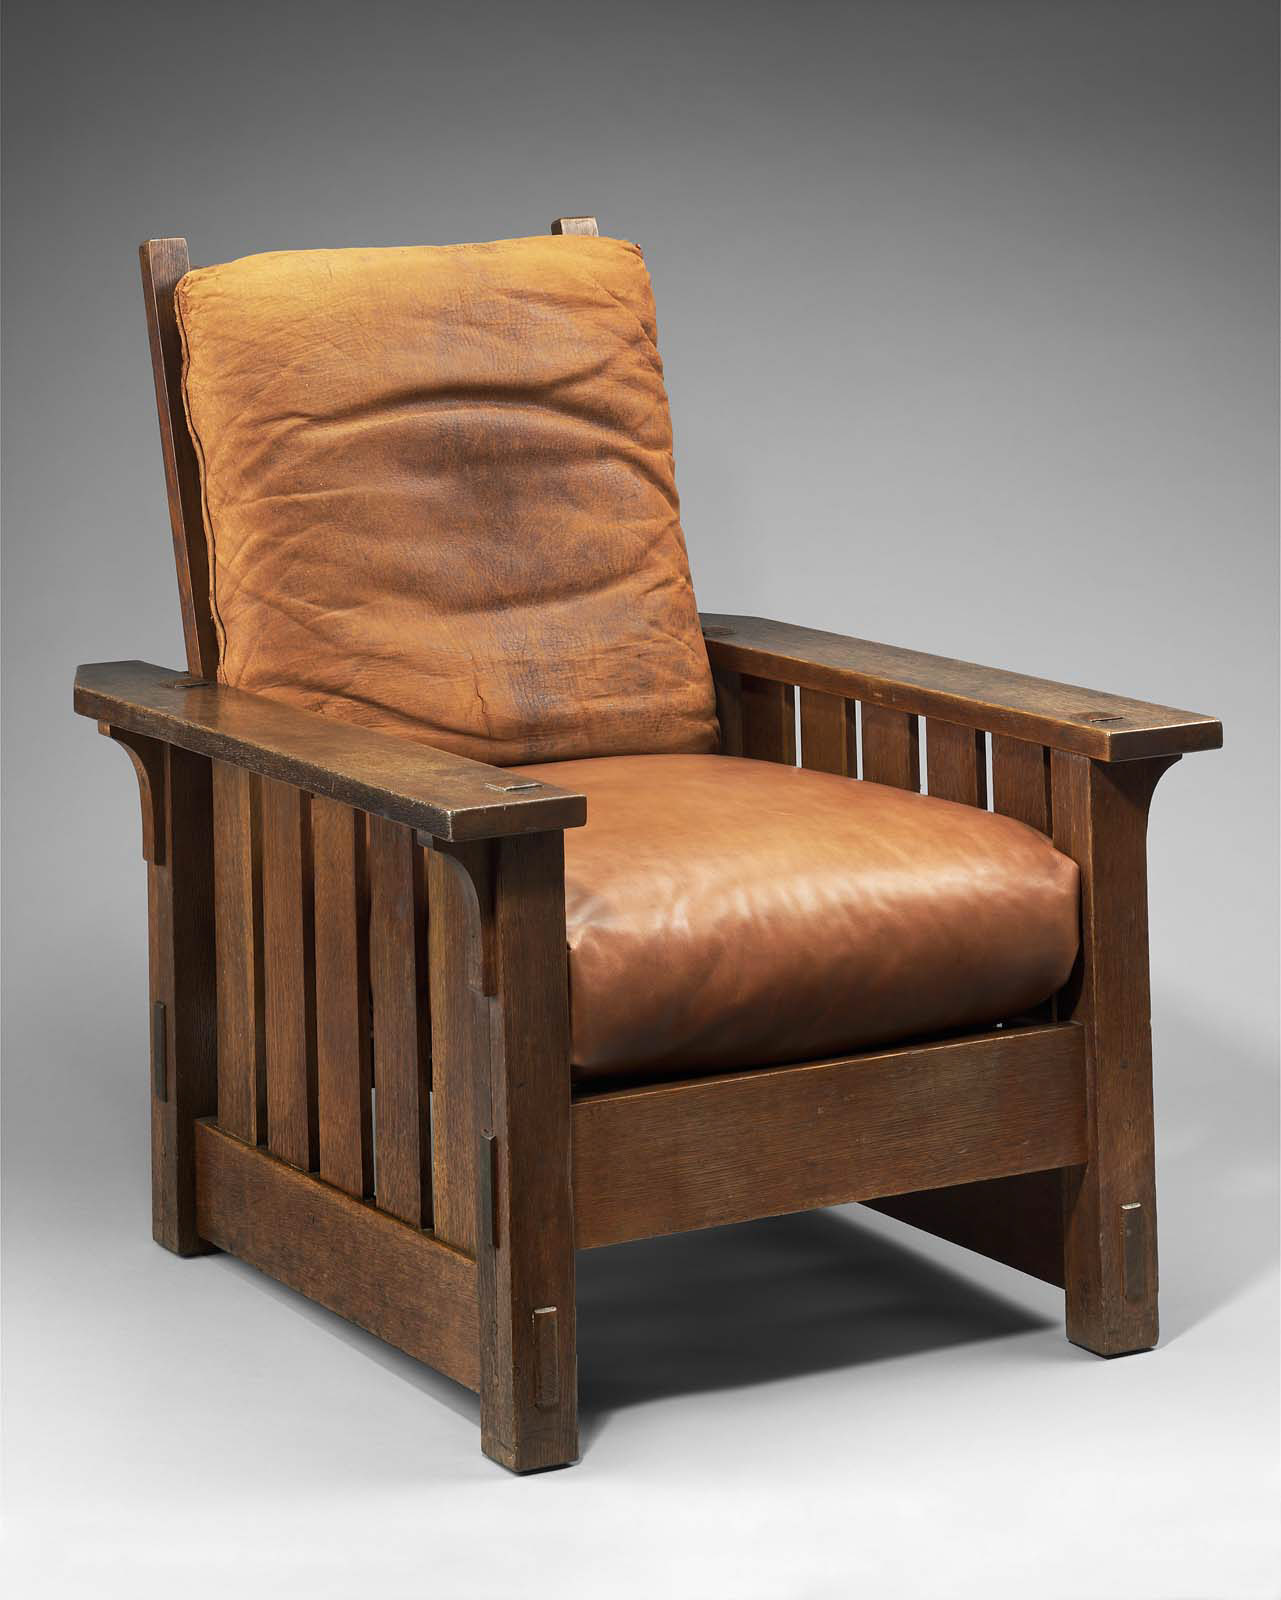 Adjustable Back Chair No 2342 Museum Of Fine Arts Boston